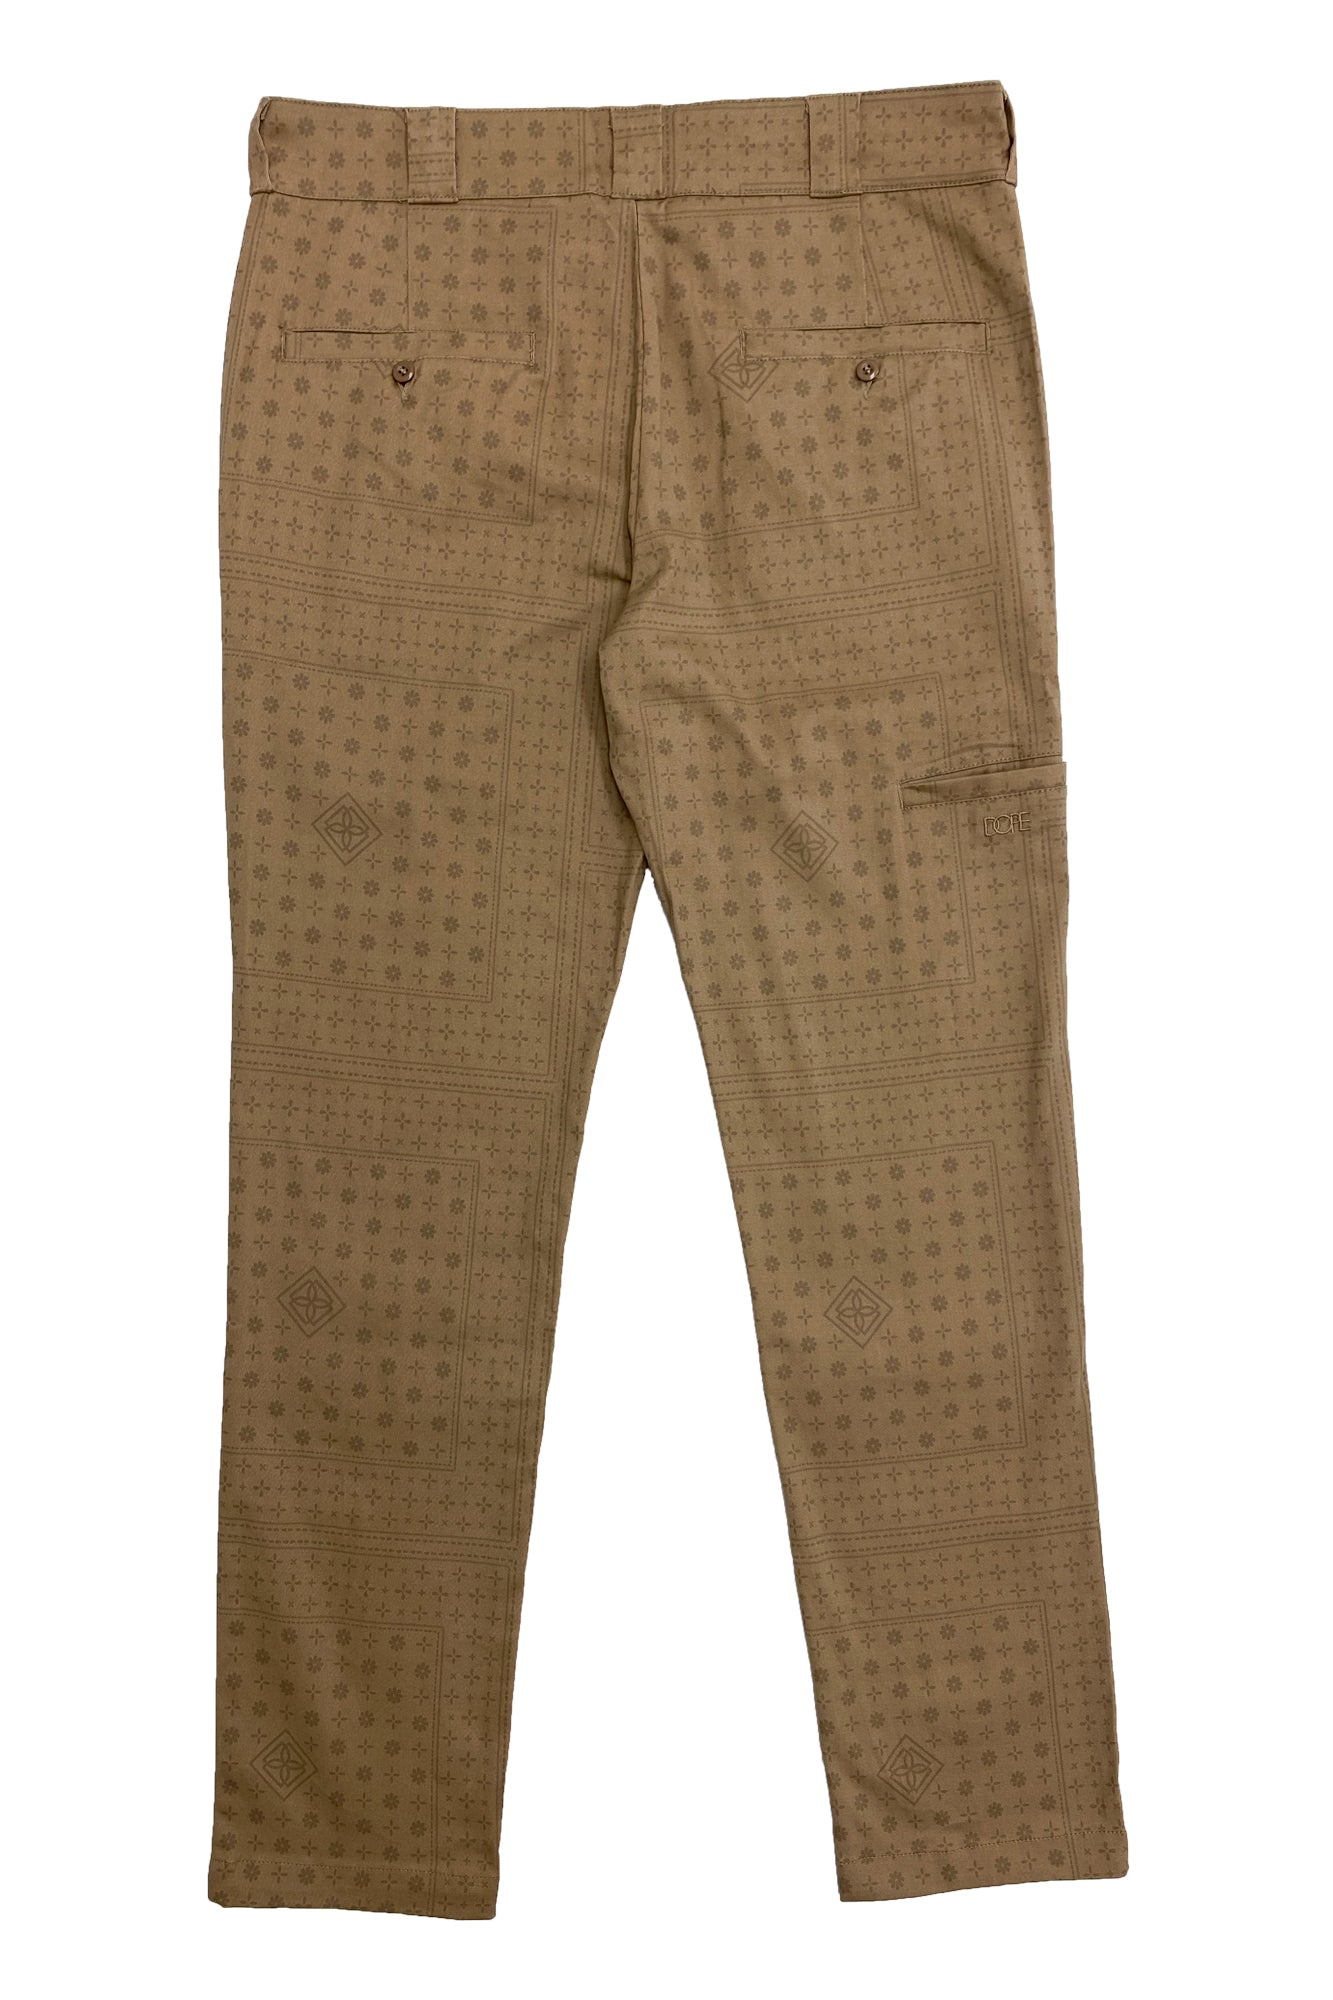 Blood, Sweat & Tears Work Pant